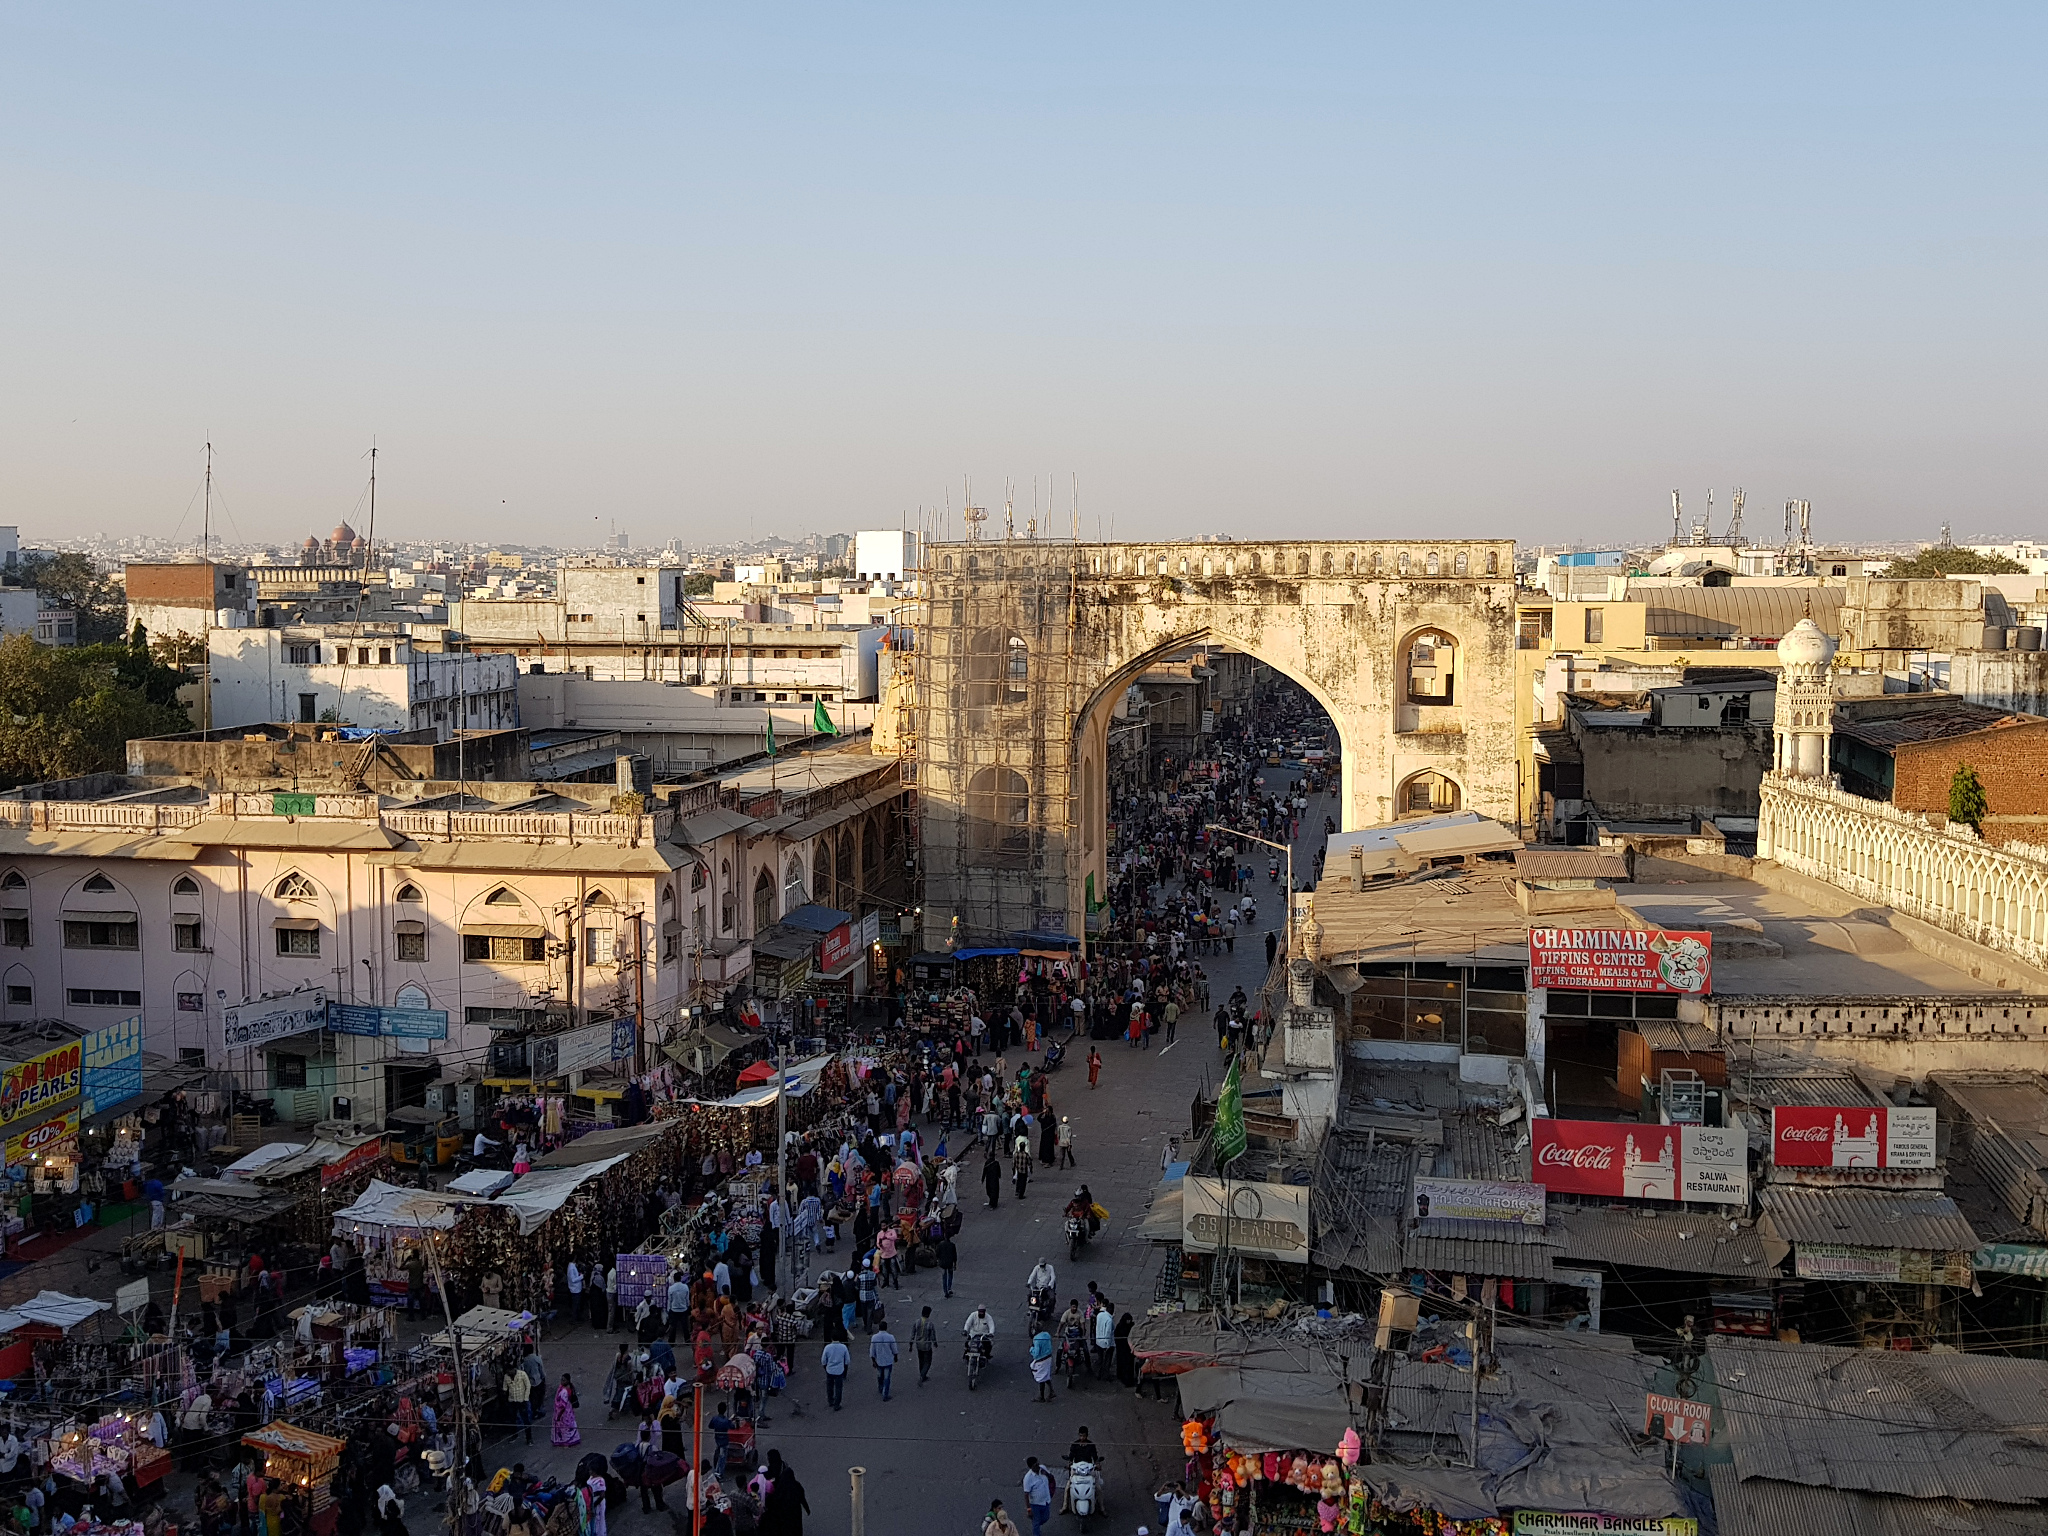 View from the top of Charminar, in Hyderabad